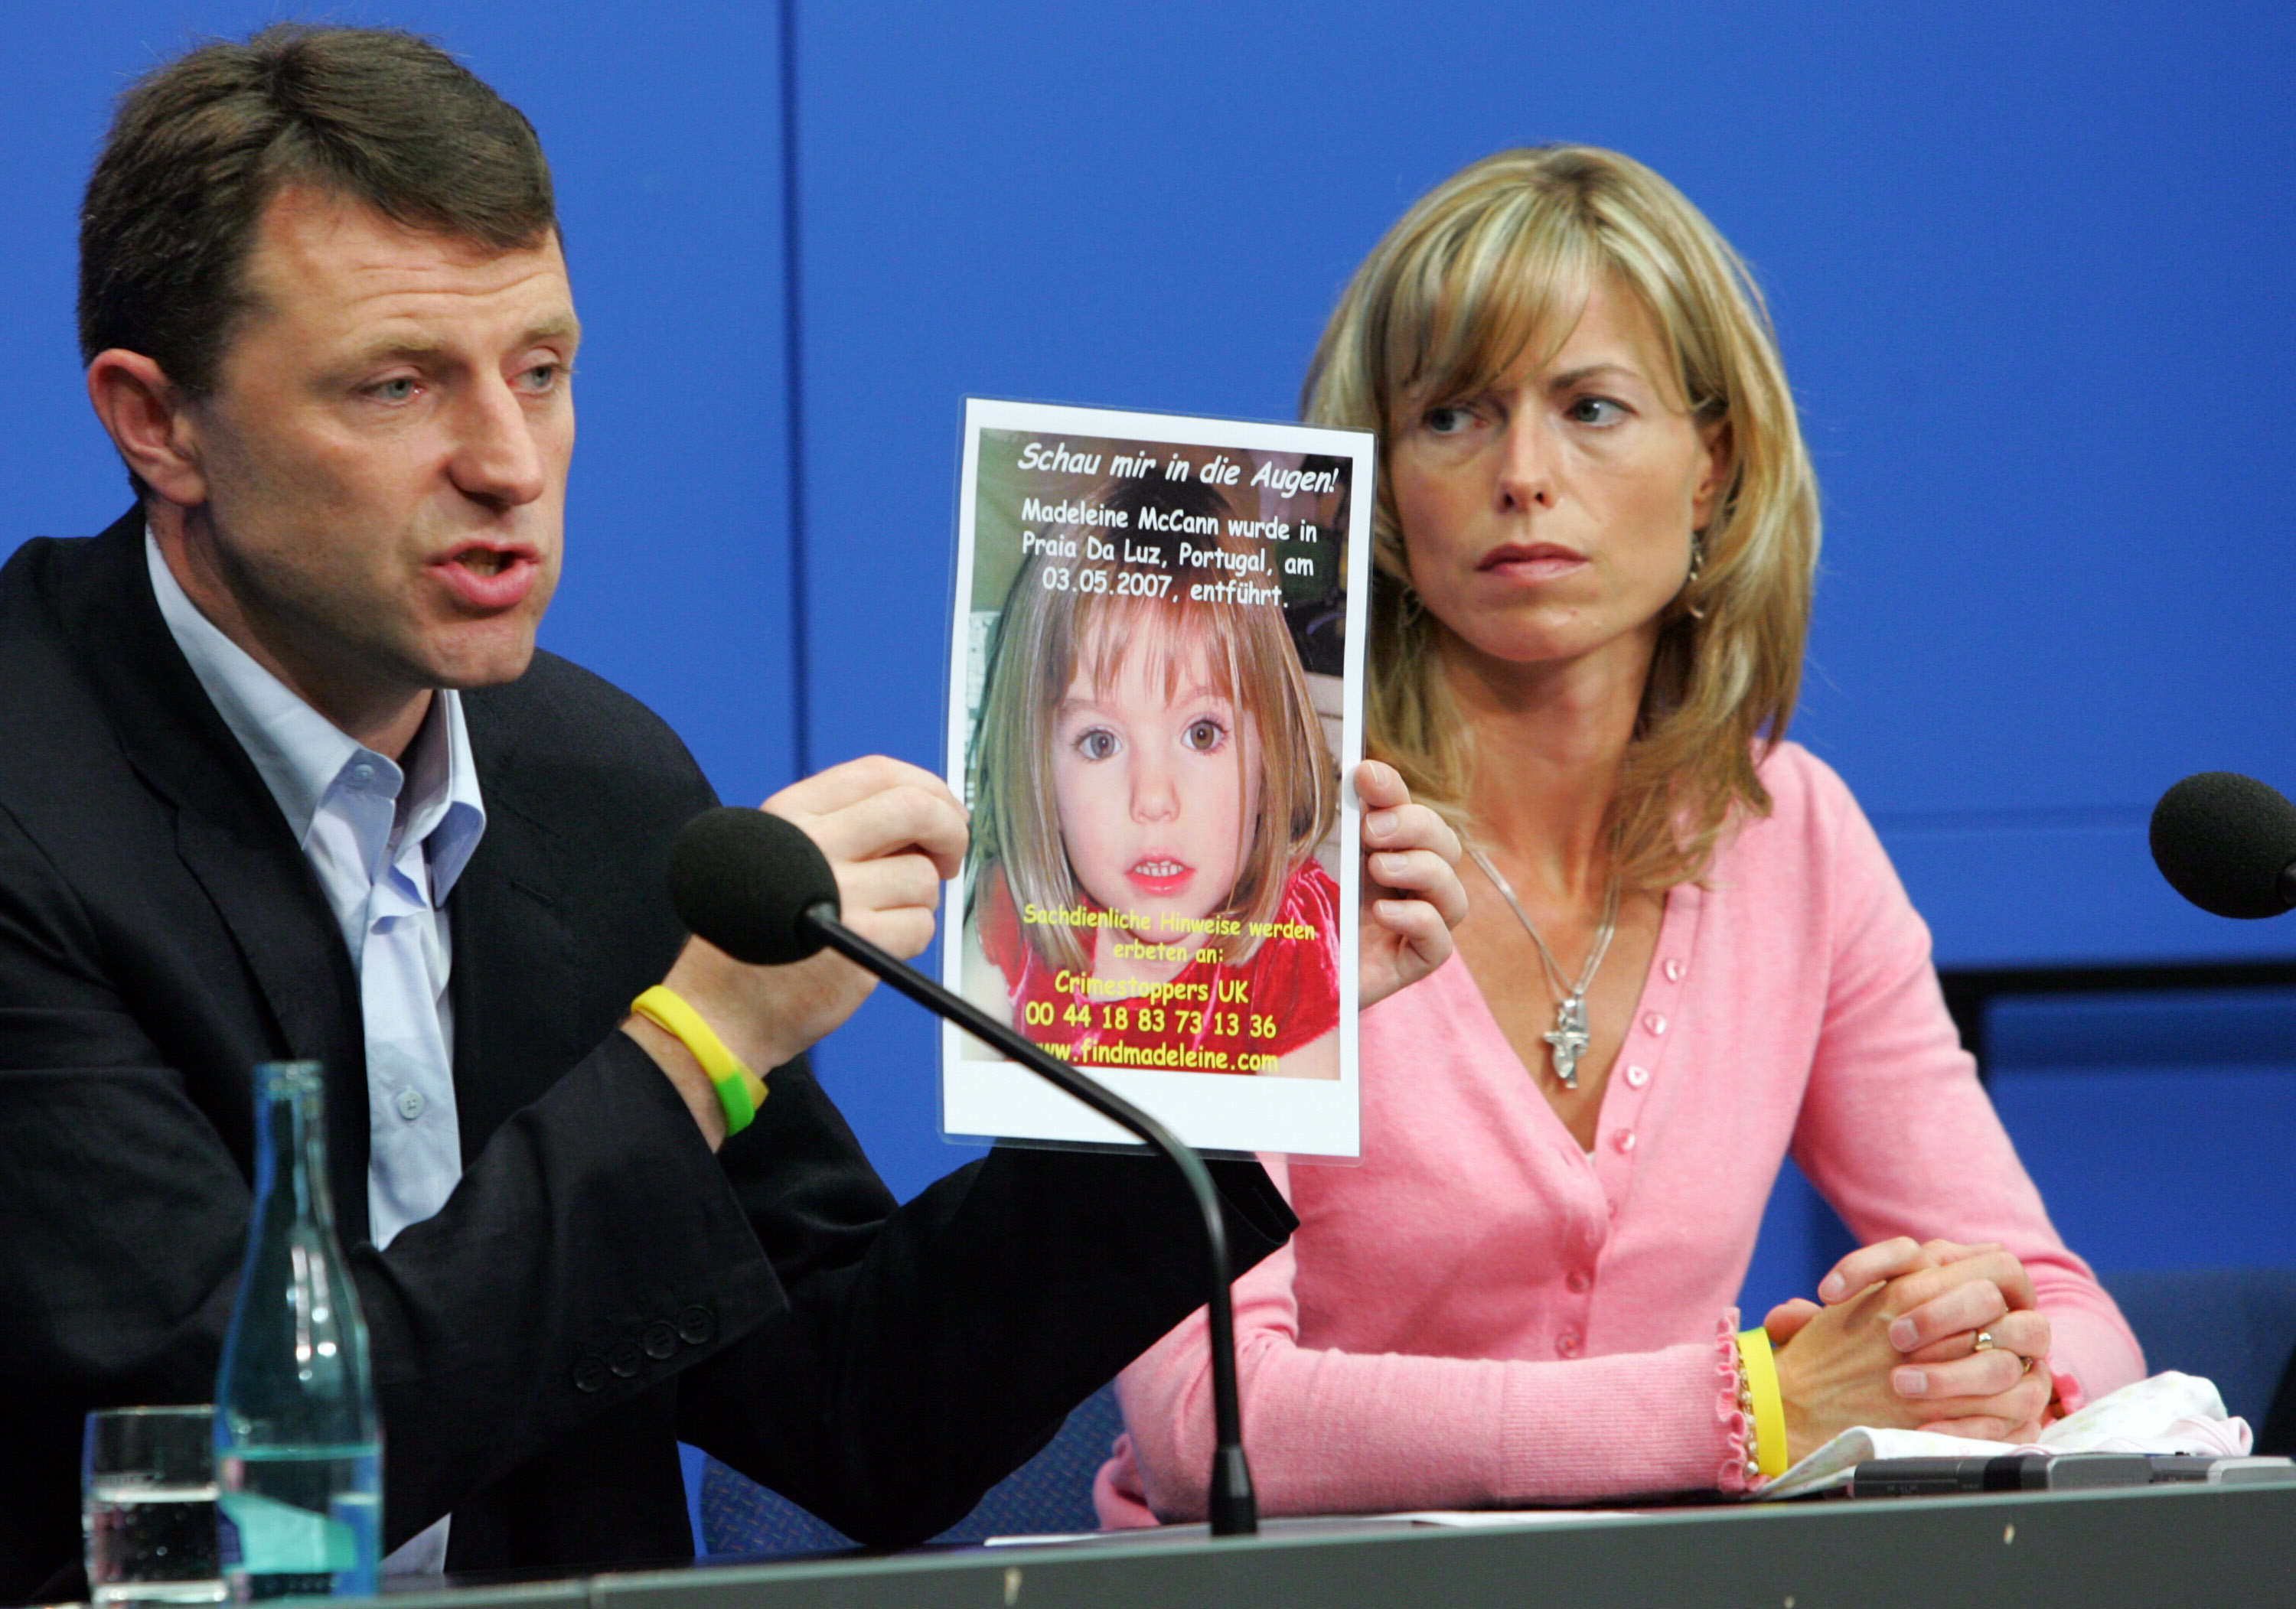 mccann1 Police Searching For Madeleine McCann End Forensic Investigation To Save Money